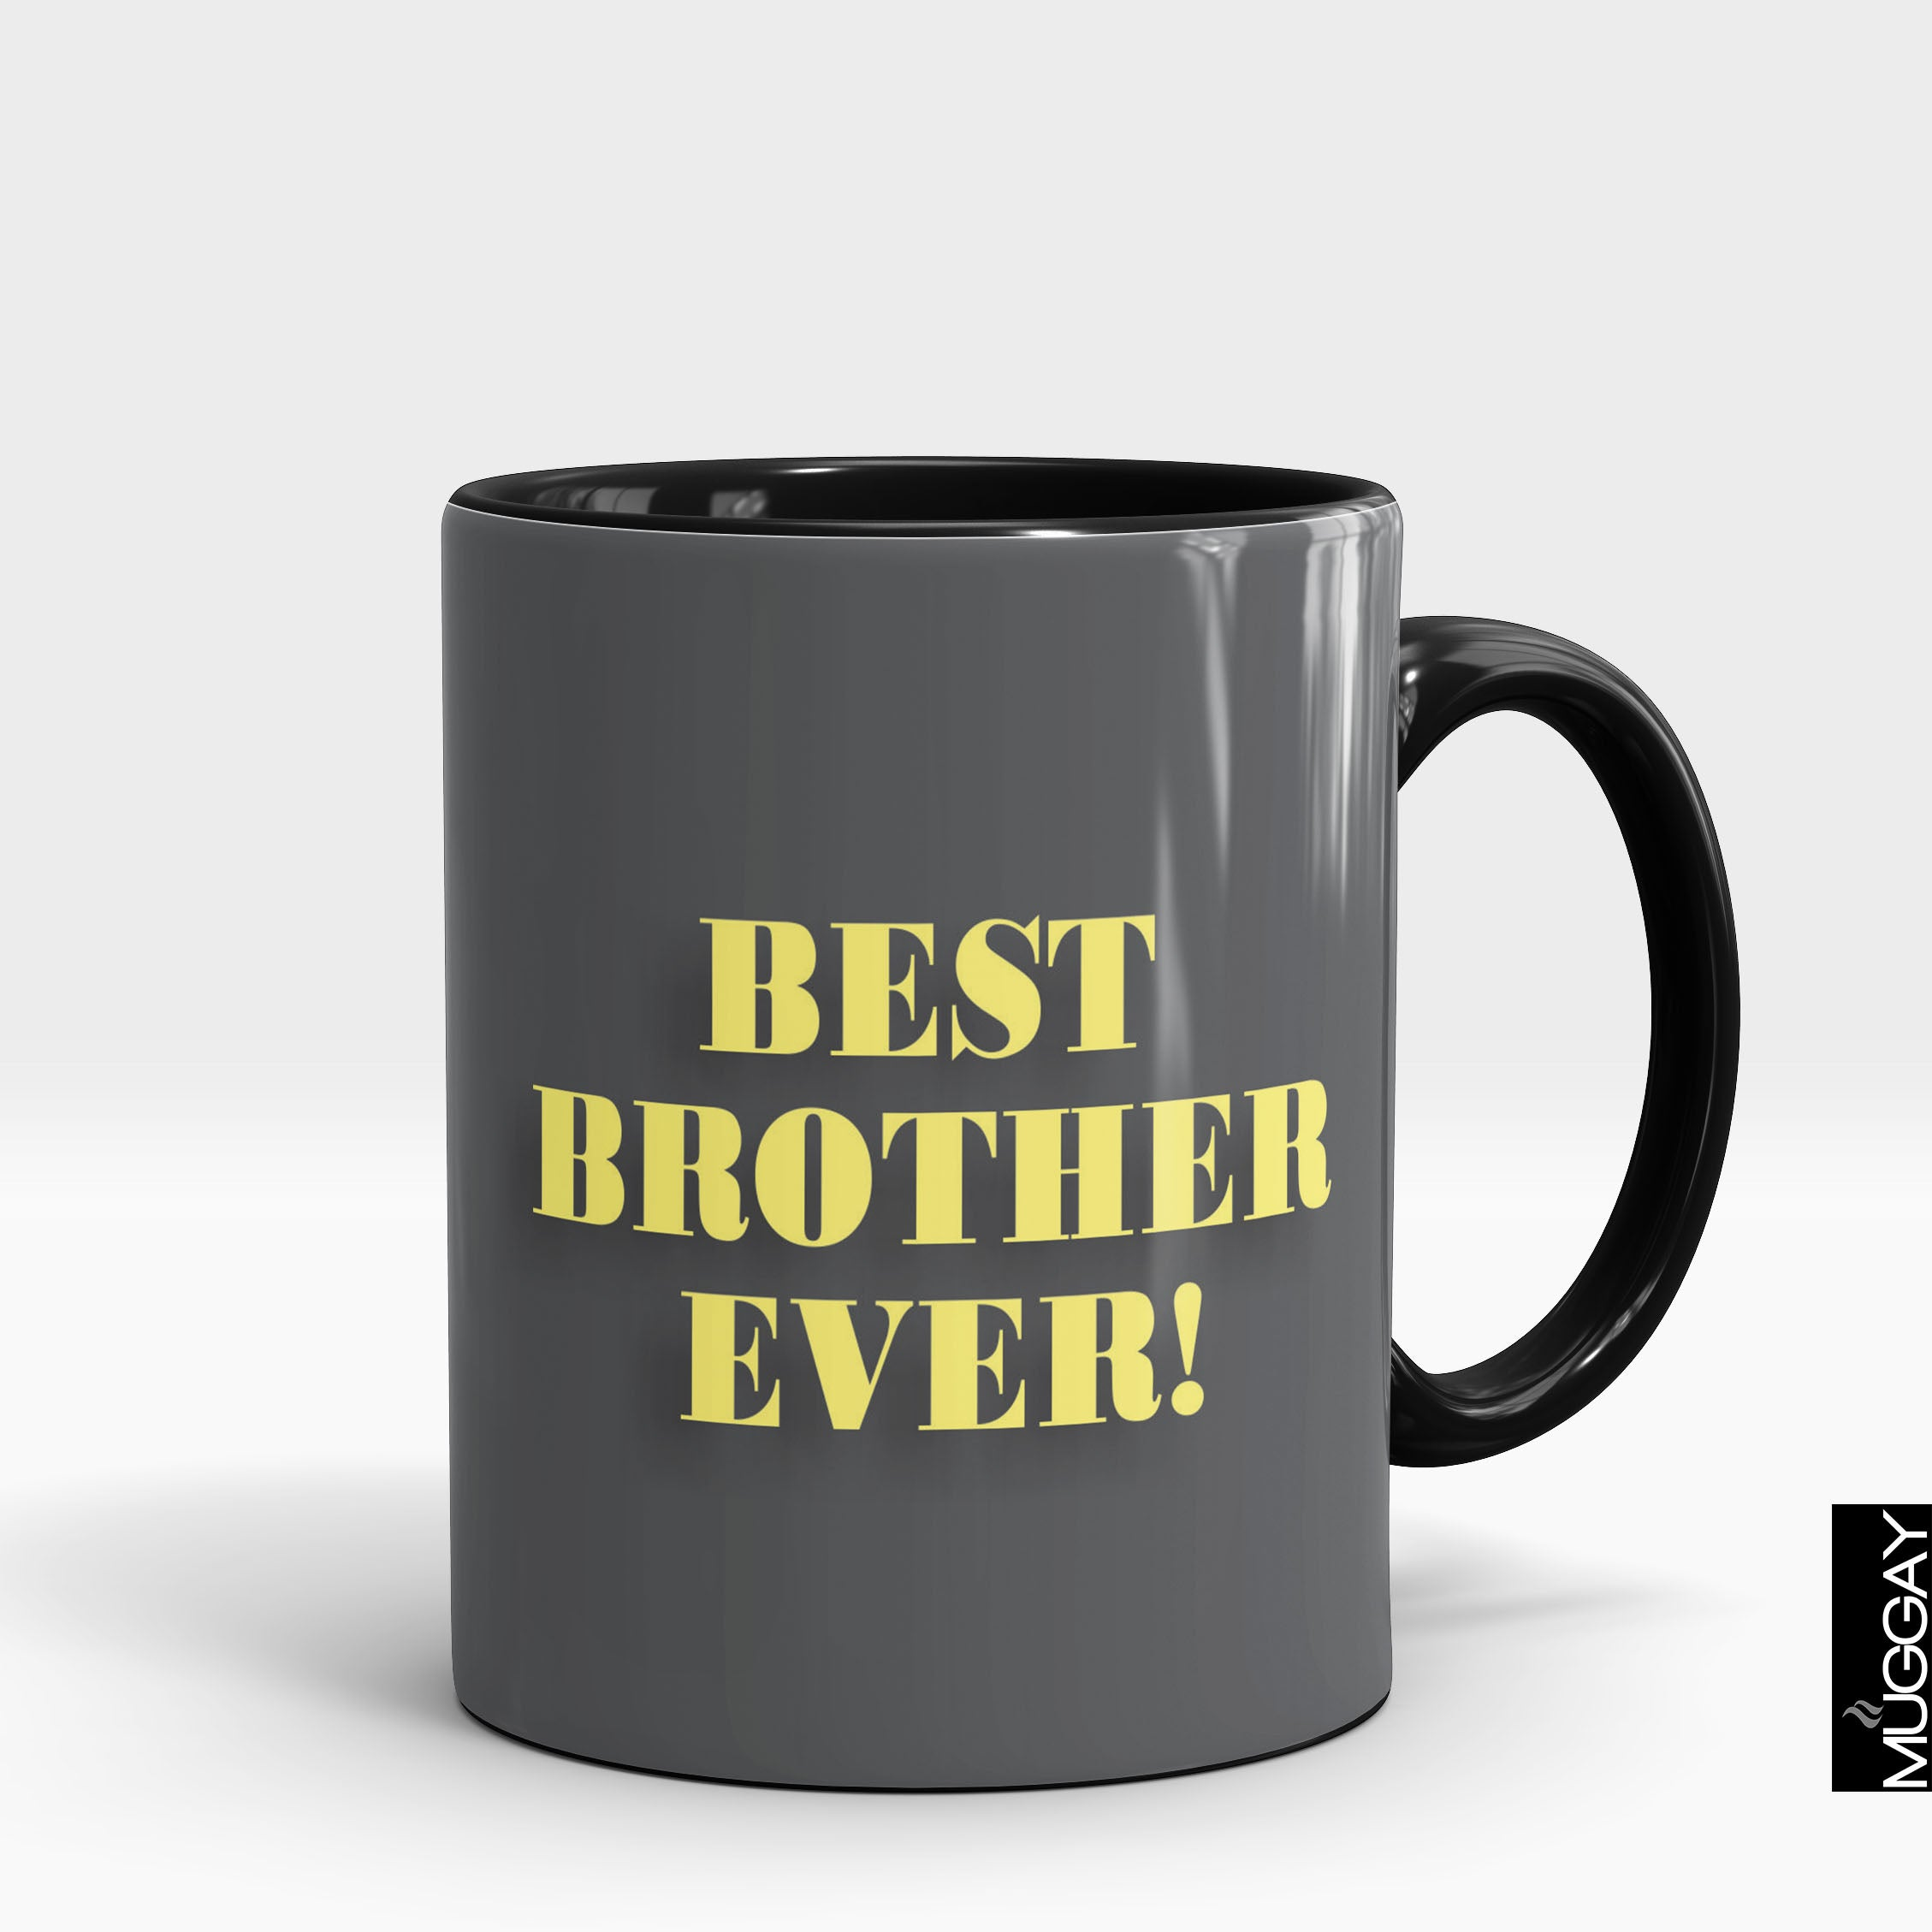 Bro1 - Muggay.com - Mugs - Printing shop - truck Art mugs - Mug printing - Customized printing - Digital printing - Muggay